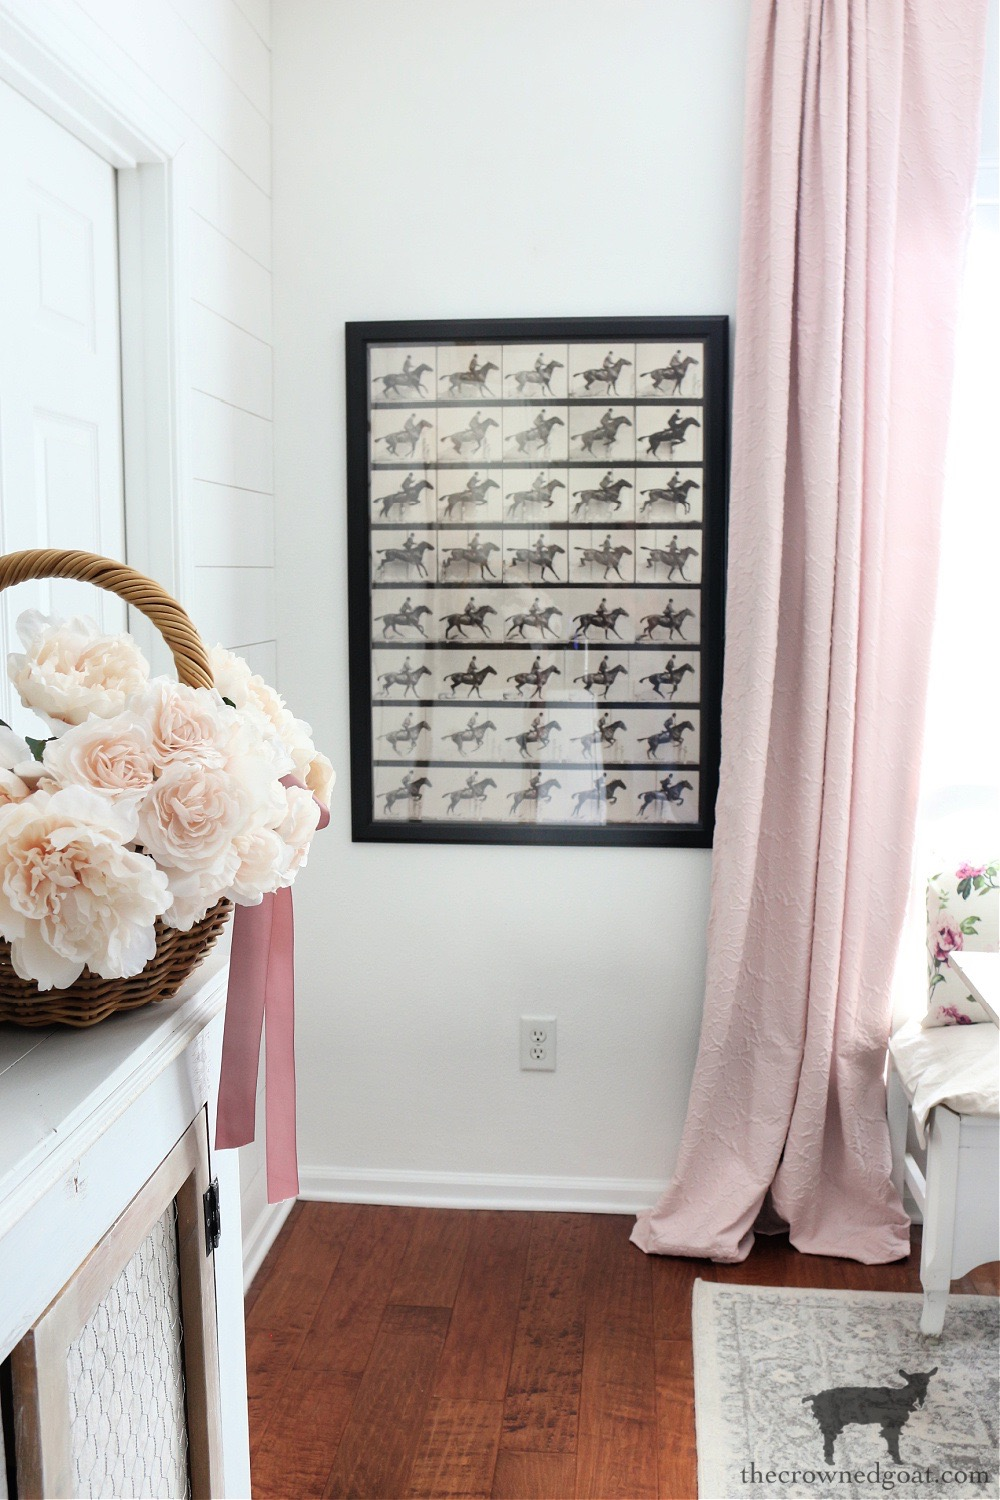 Equestrian Art in the Breakfast Nook with Pops of Pink-The Crowned Goat